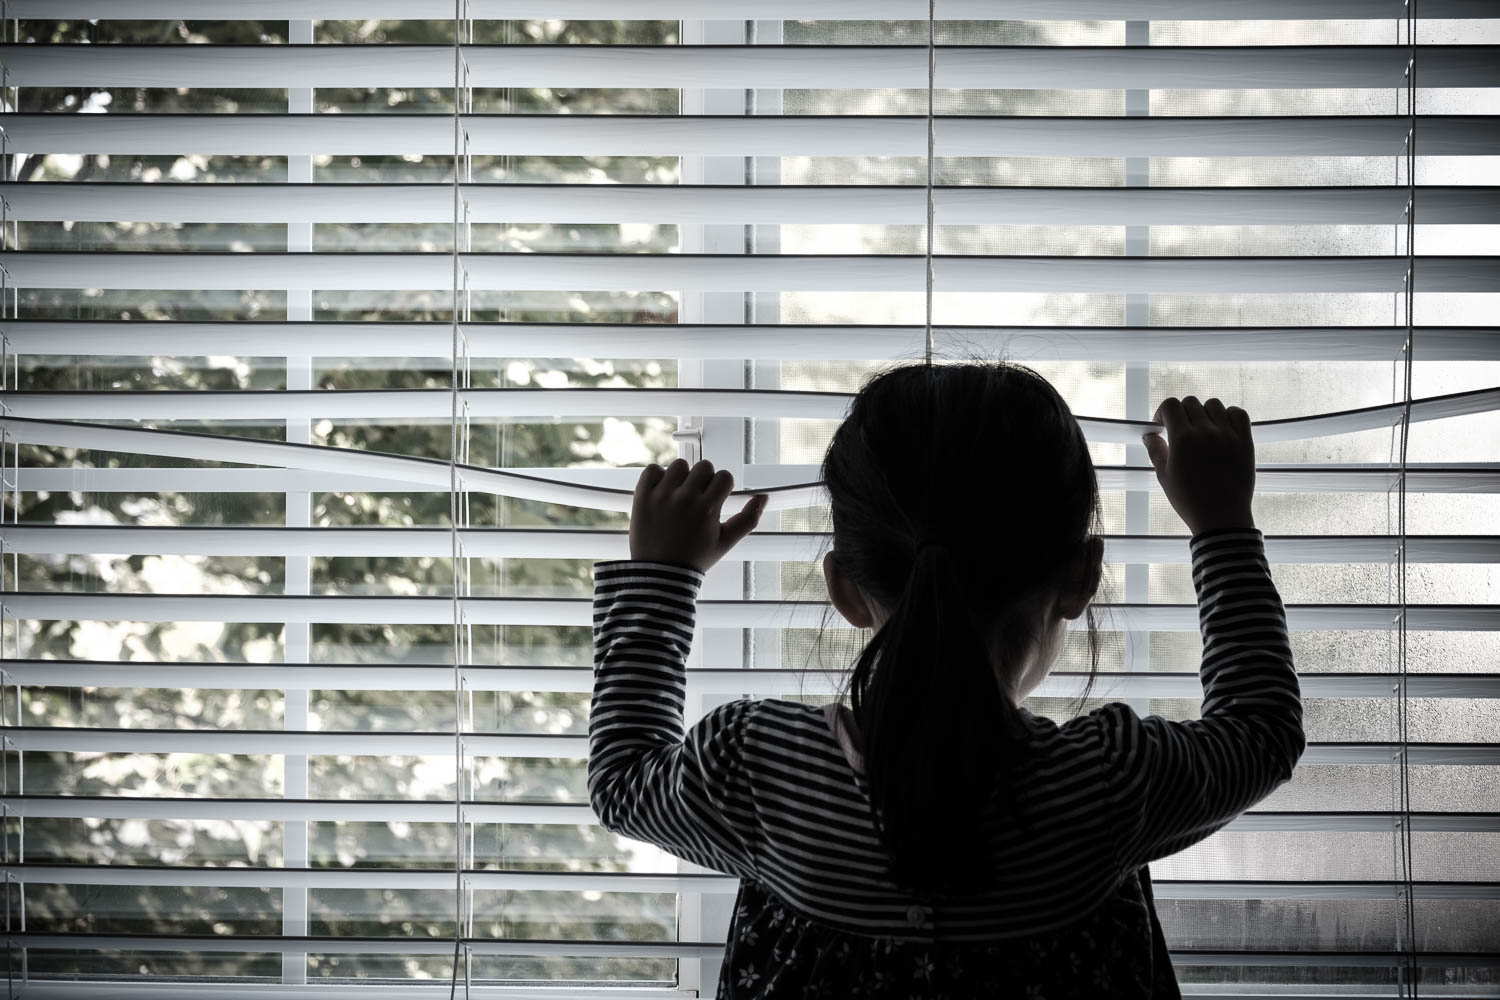 A fort lauderdale child looks outside between the blinds in her south florida home. She is probably about 4 years old, and would be eligible for exploited children civl remedies